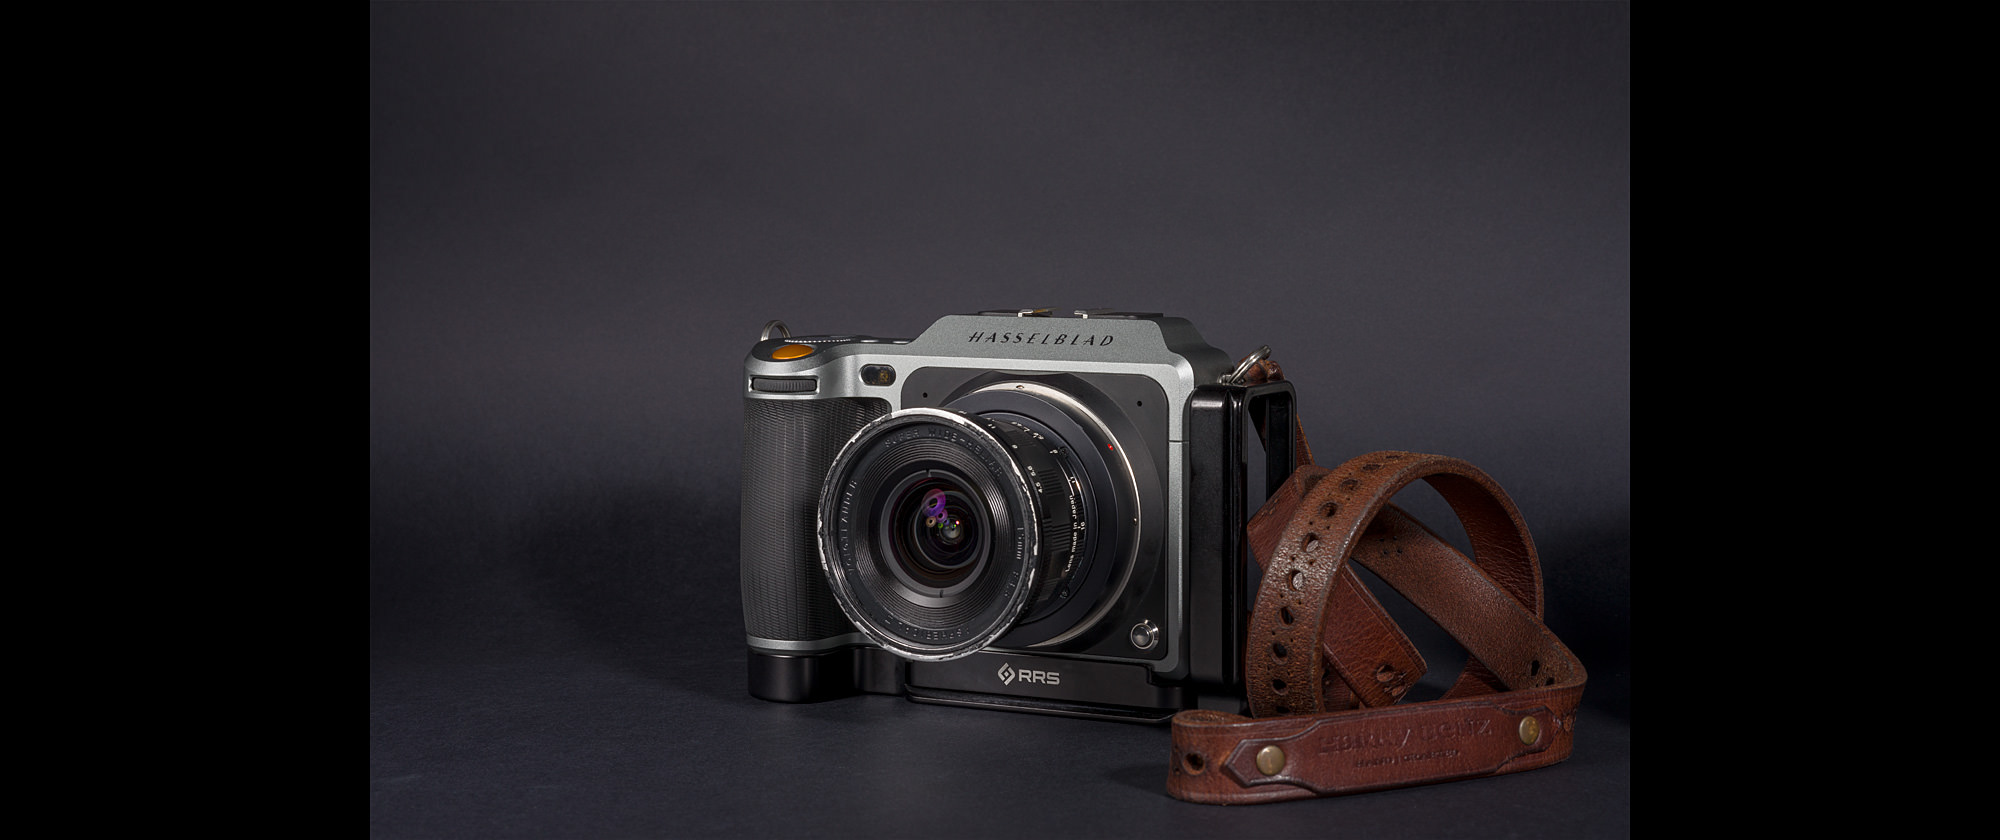 Hasselblad X1D and Voigtlander Super-Wide Heliar 15mm f/4.5 v. III